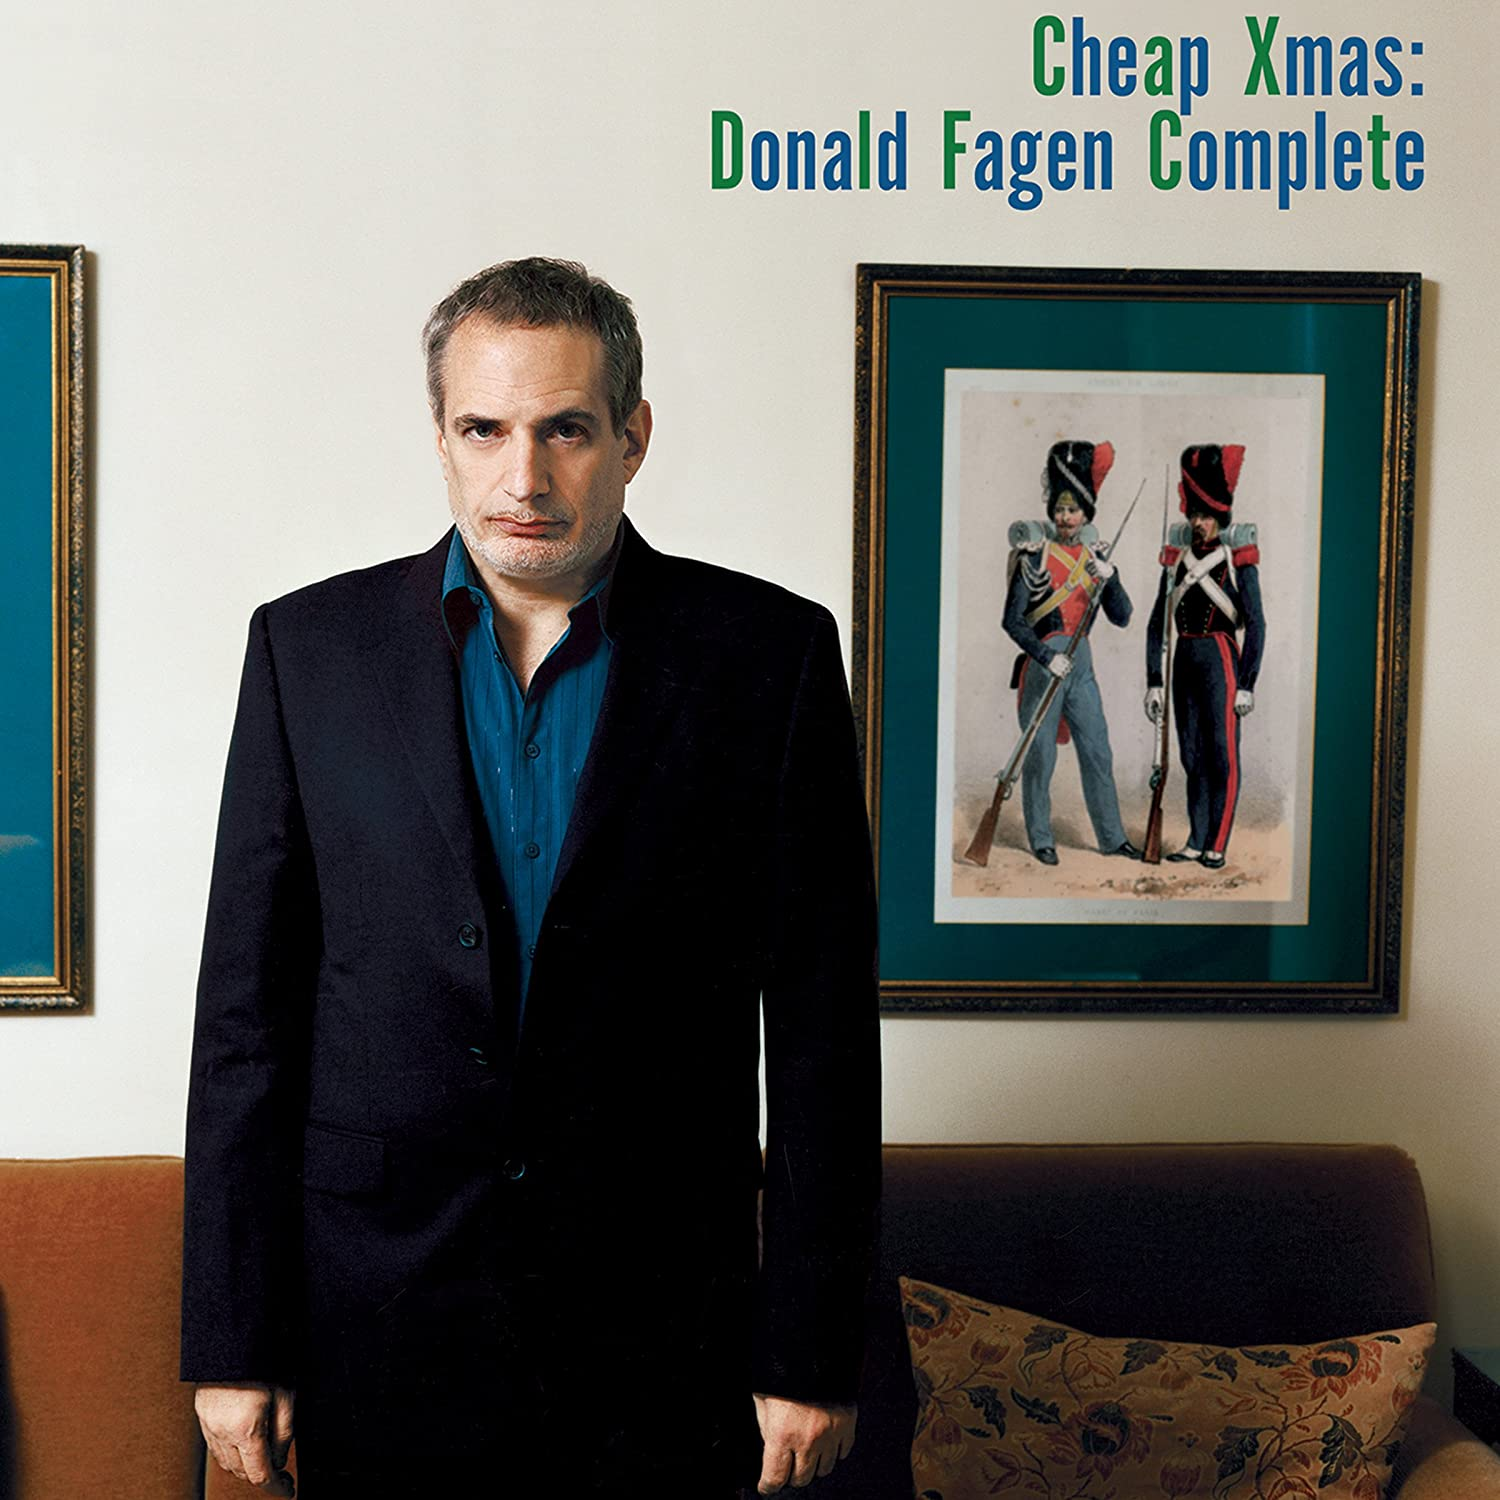 Fagen, Donald/Cheap X-Mas (7LP Box Set) [LP]